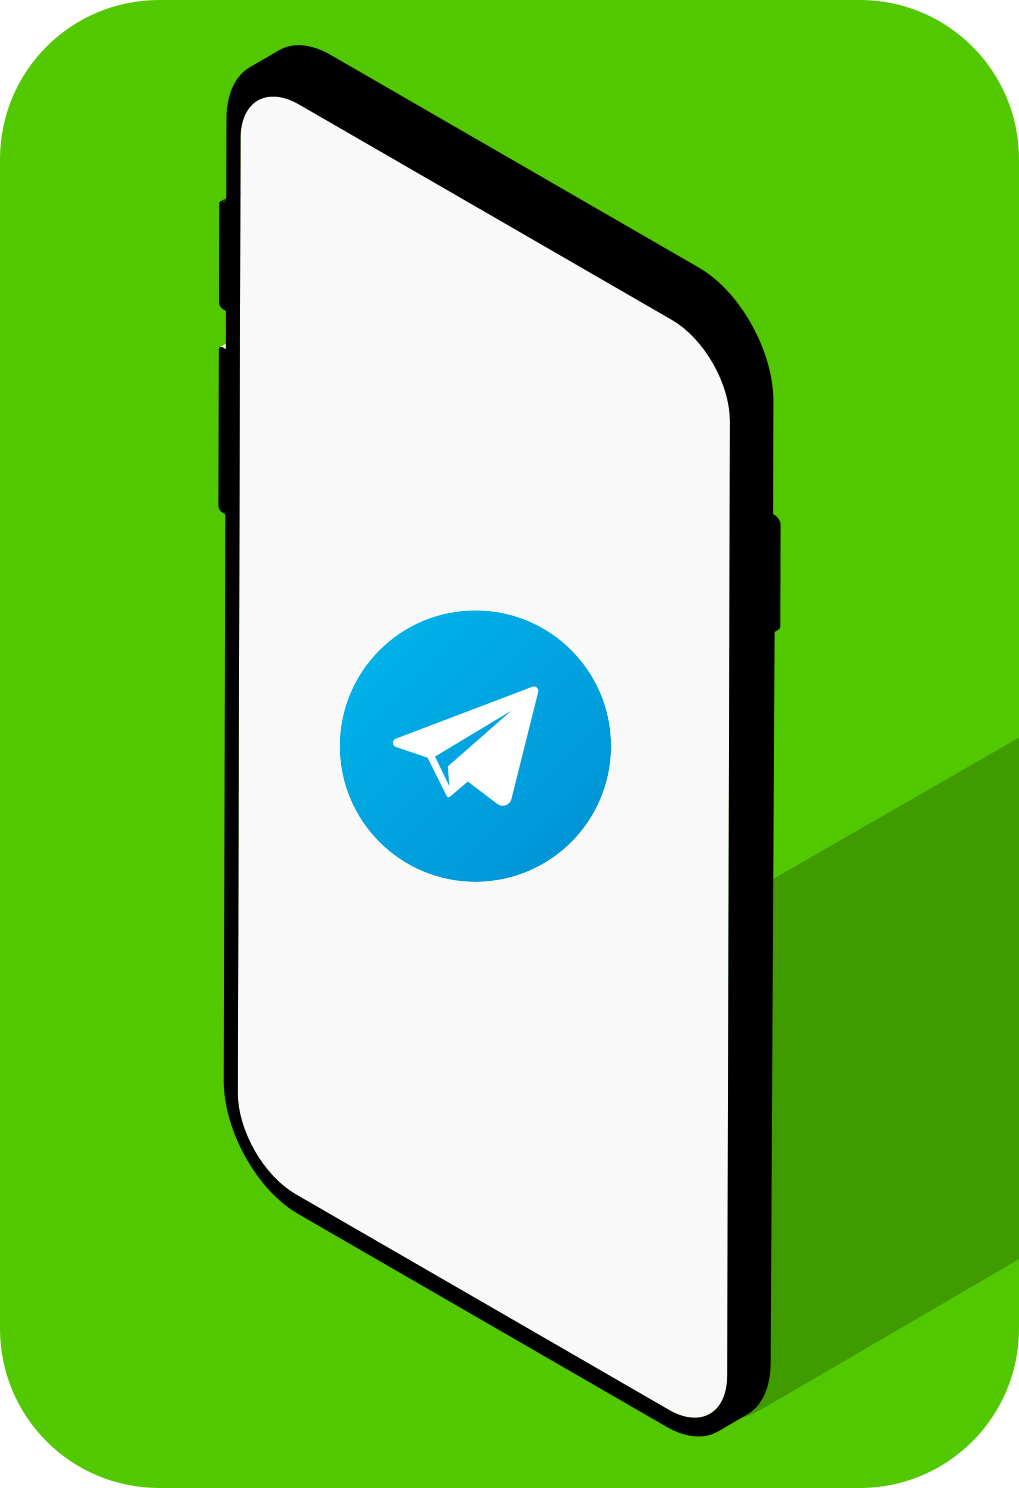 Newsletter Telegram 2020 08 30 ohneText